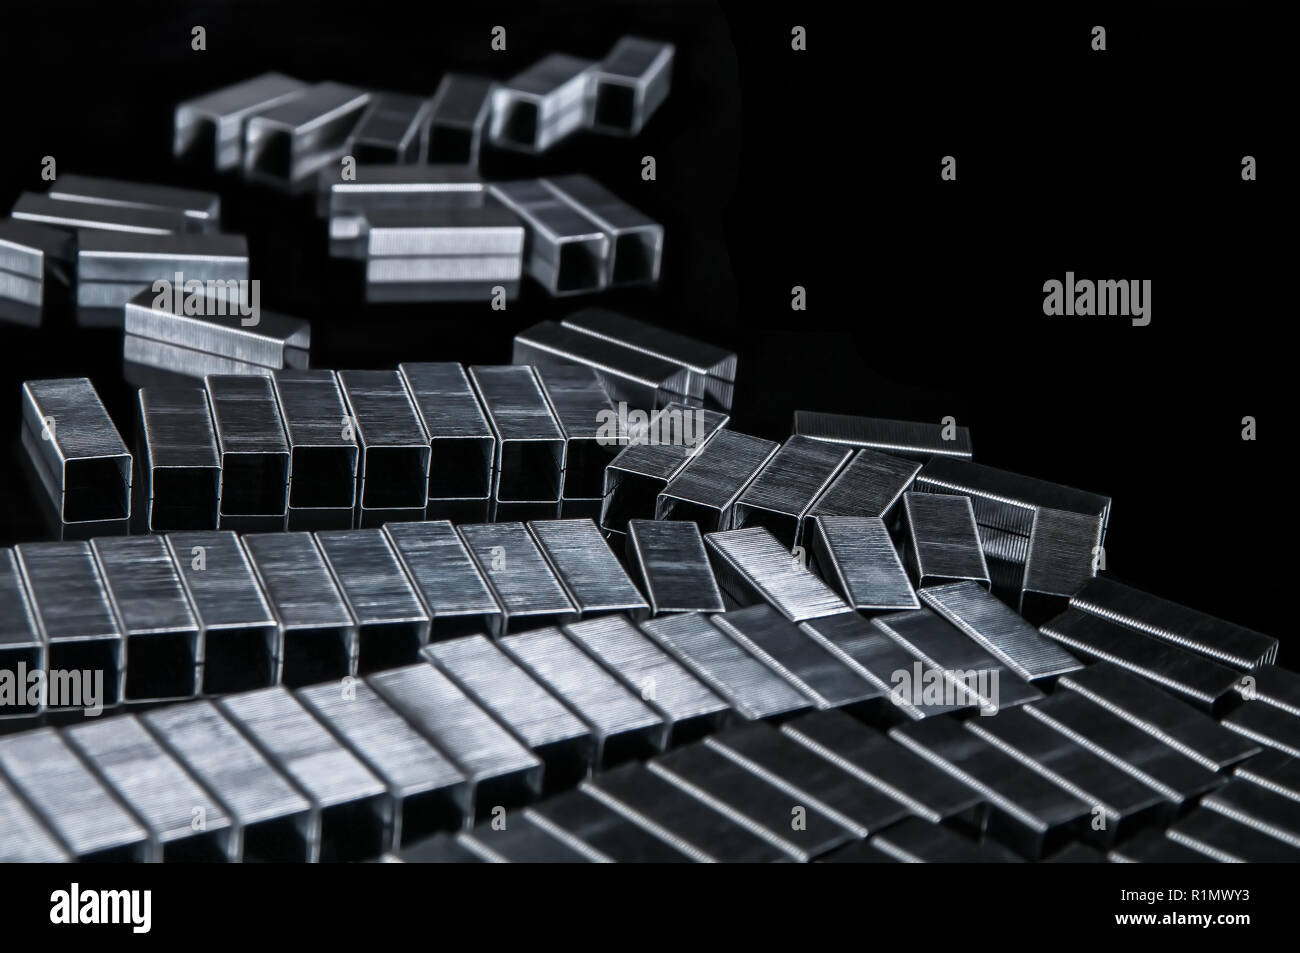 Many metallic refills staples on modern black work desk - Organizing and office attachment supply for writing, paper documents, research and studying - Concept of school, education, secretary, university and learning - Stock Image